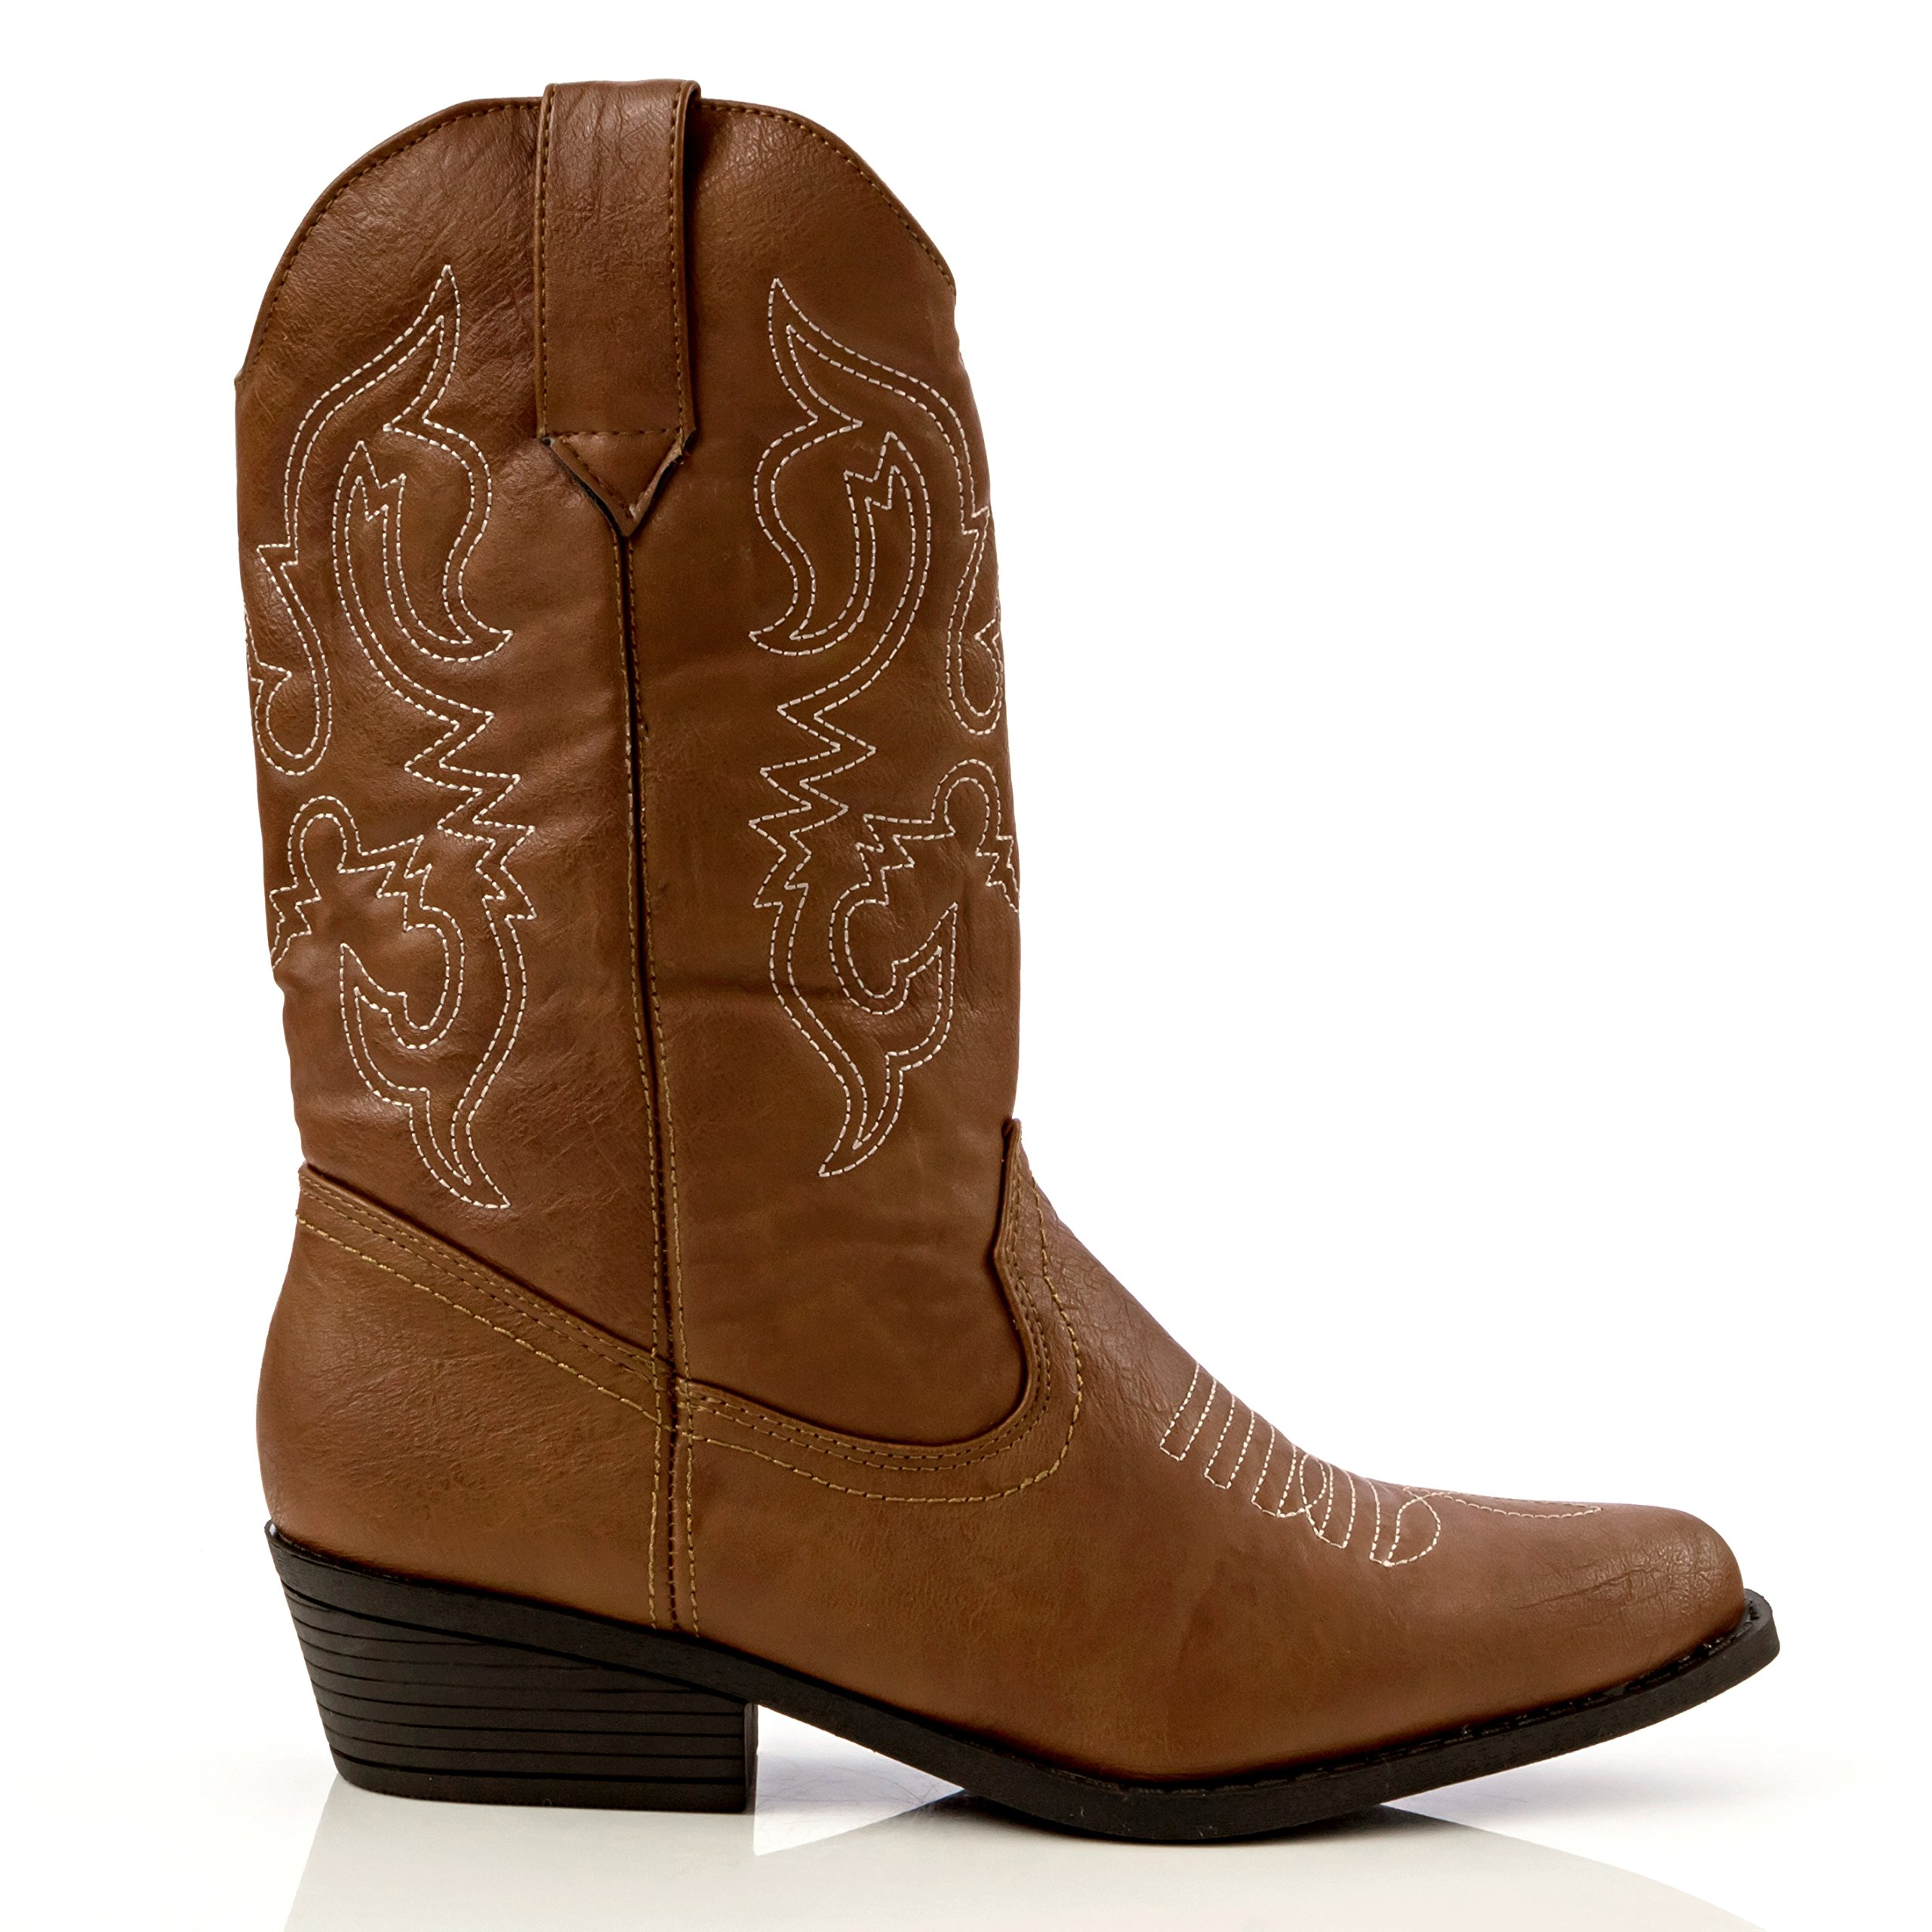 Charles Albert Women's Western Style Embroidered Cowboy Boot in Cognac Size: 6 by Charles Albert (Image #2)